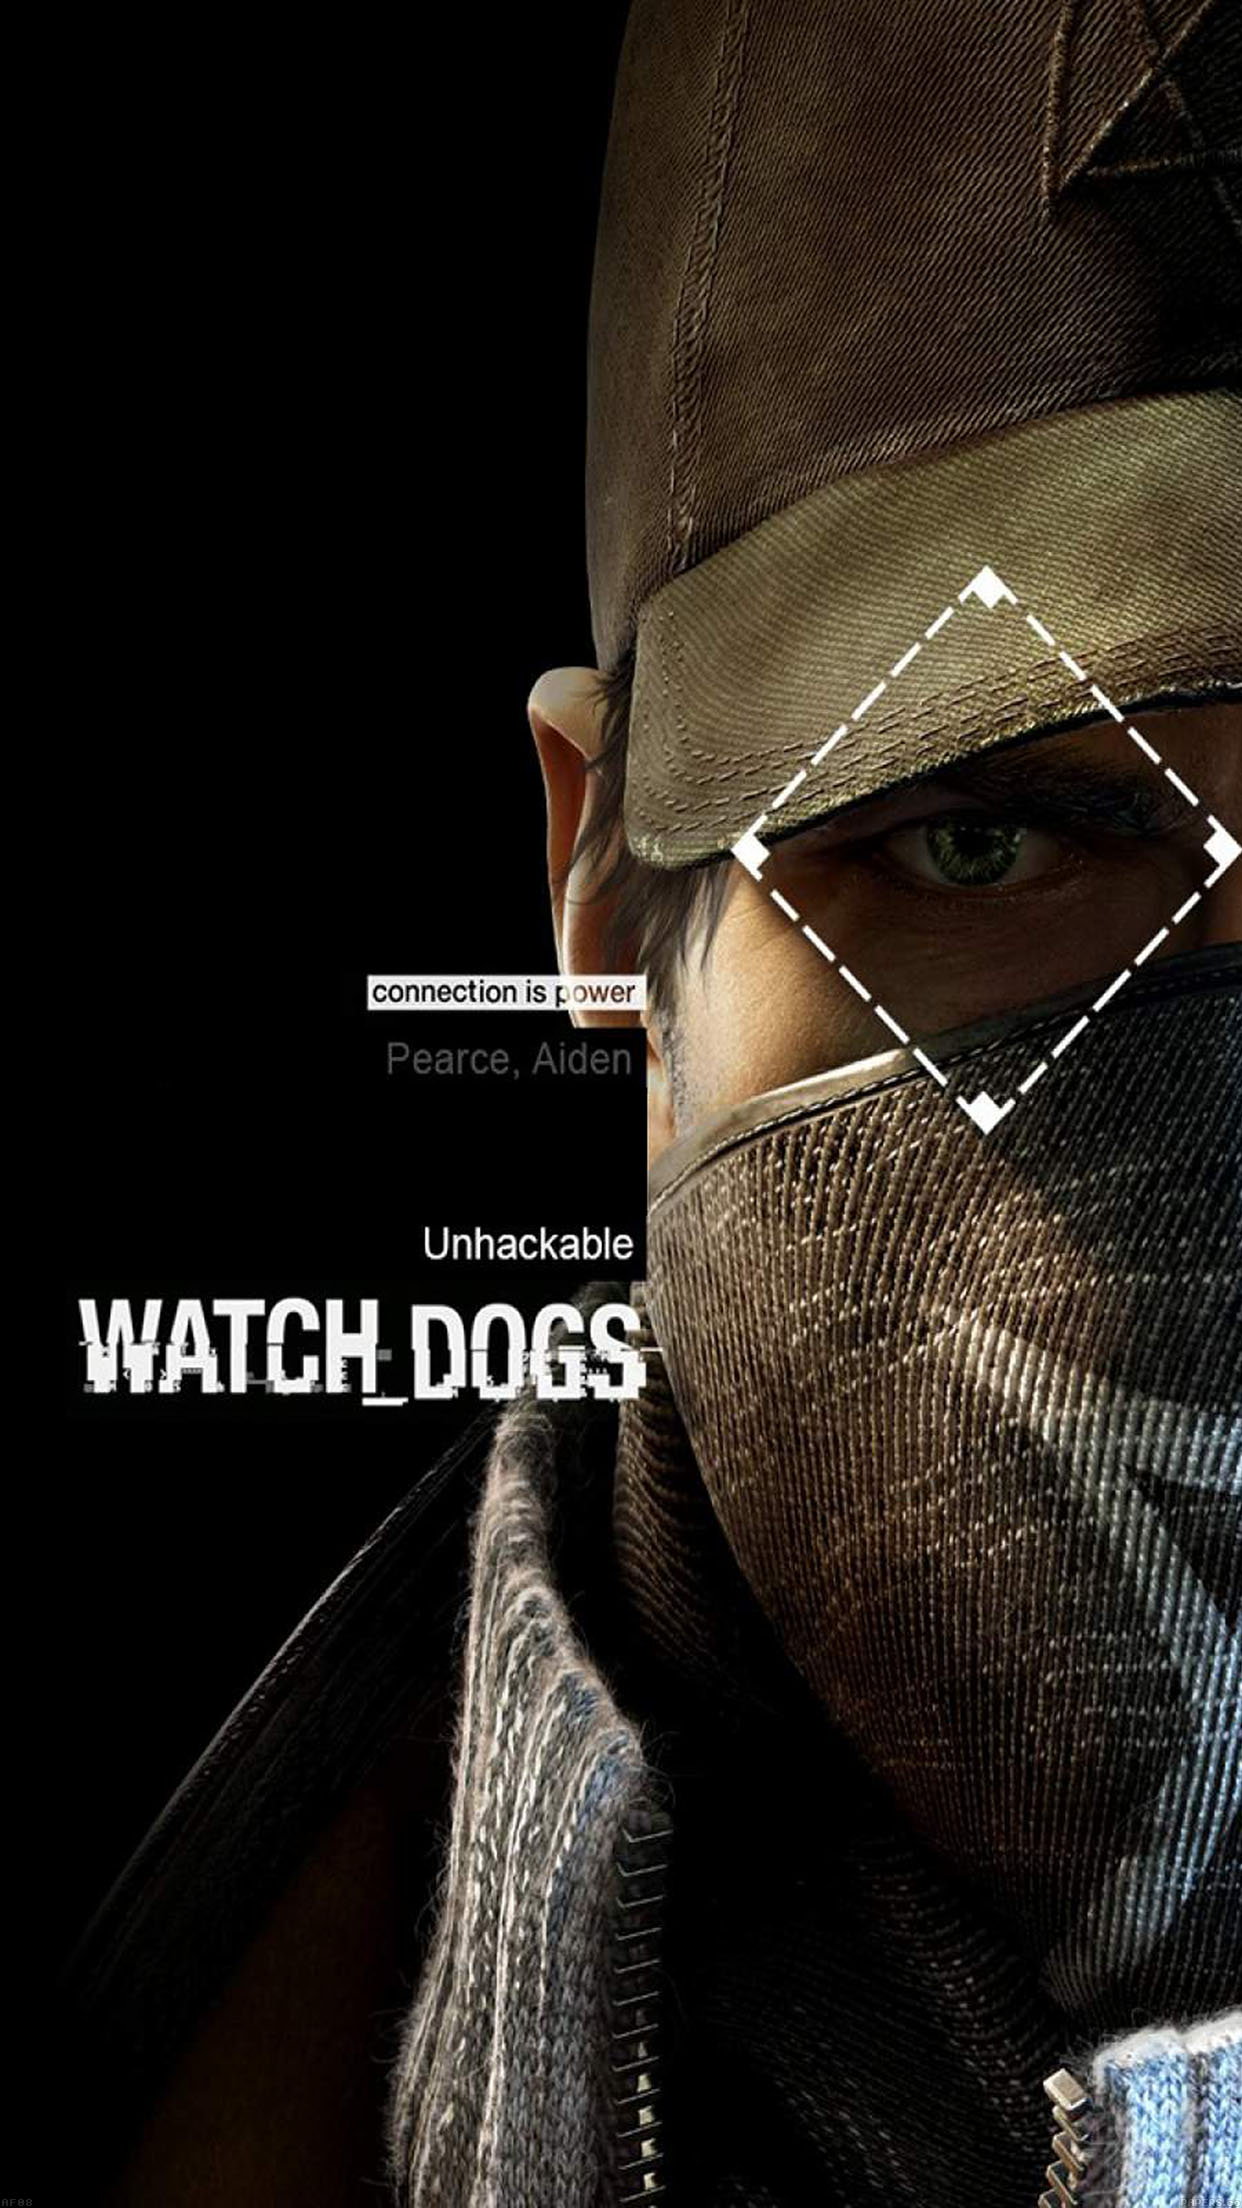 Wallpaper iphone watch dogs - Iphone 6